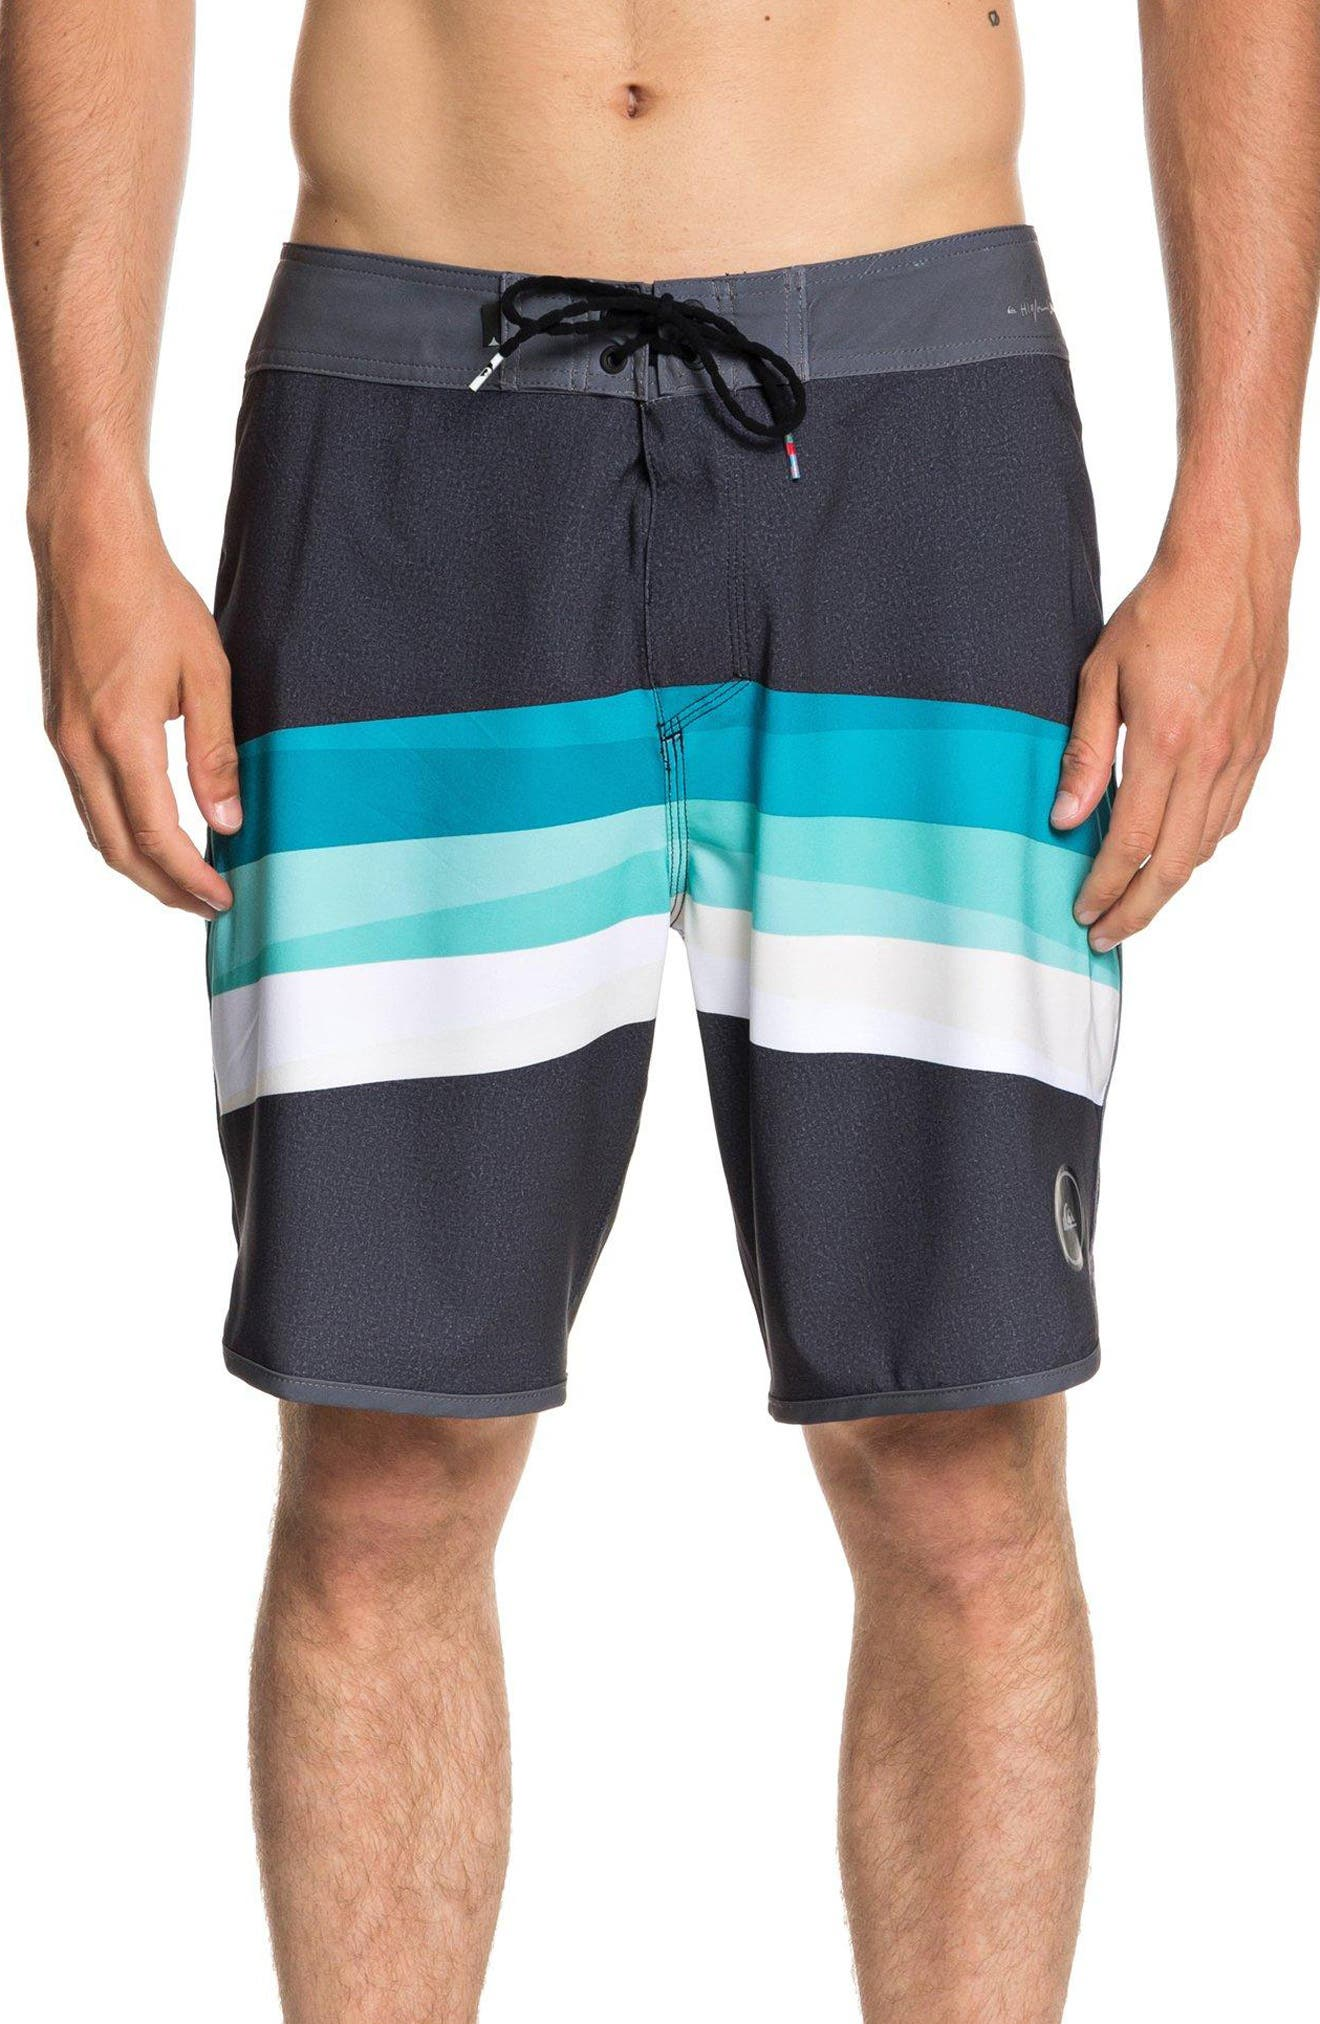 QUIKSILVER Highline Reverse Board Shorts, Main, color, 002